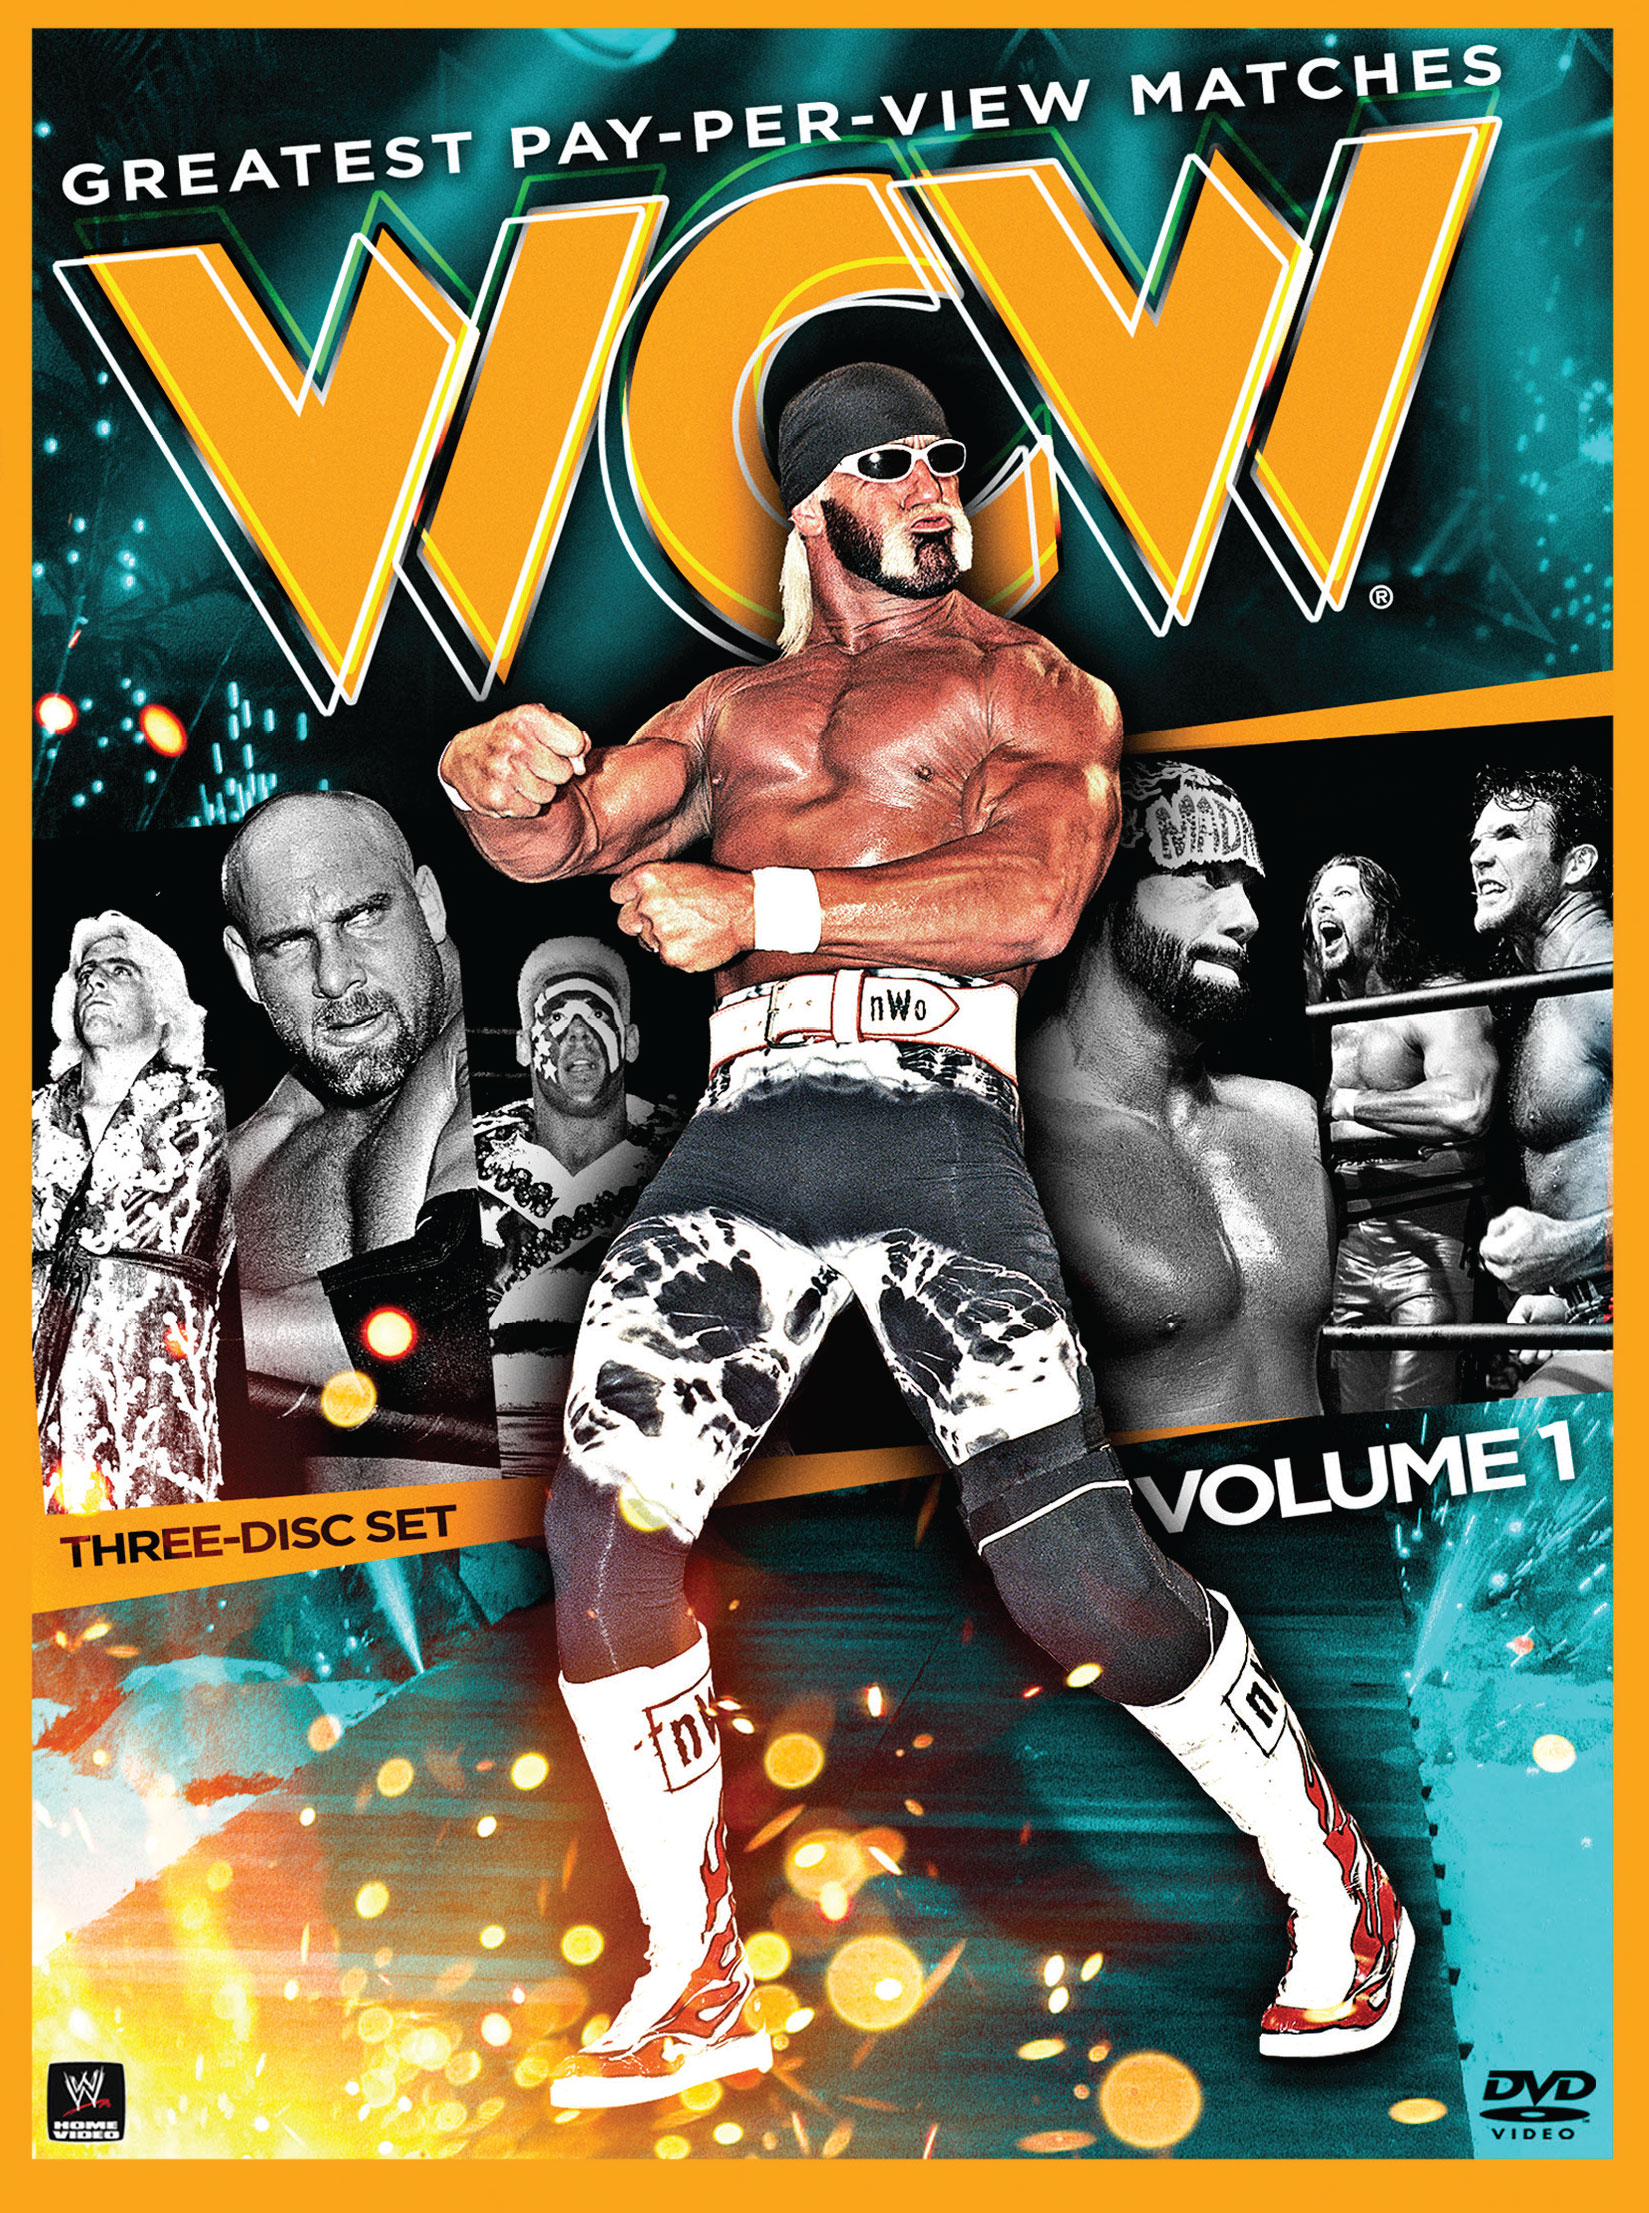 WWE: WCW Greatest Pay-Per-View Matches, Vol. 1